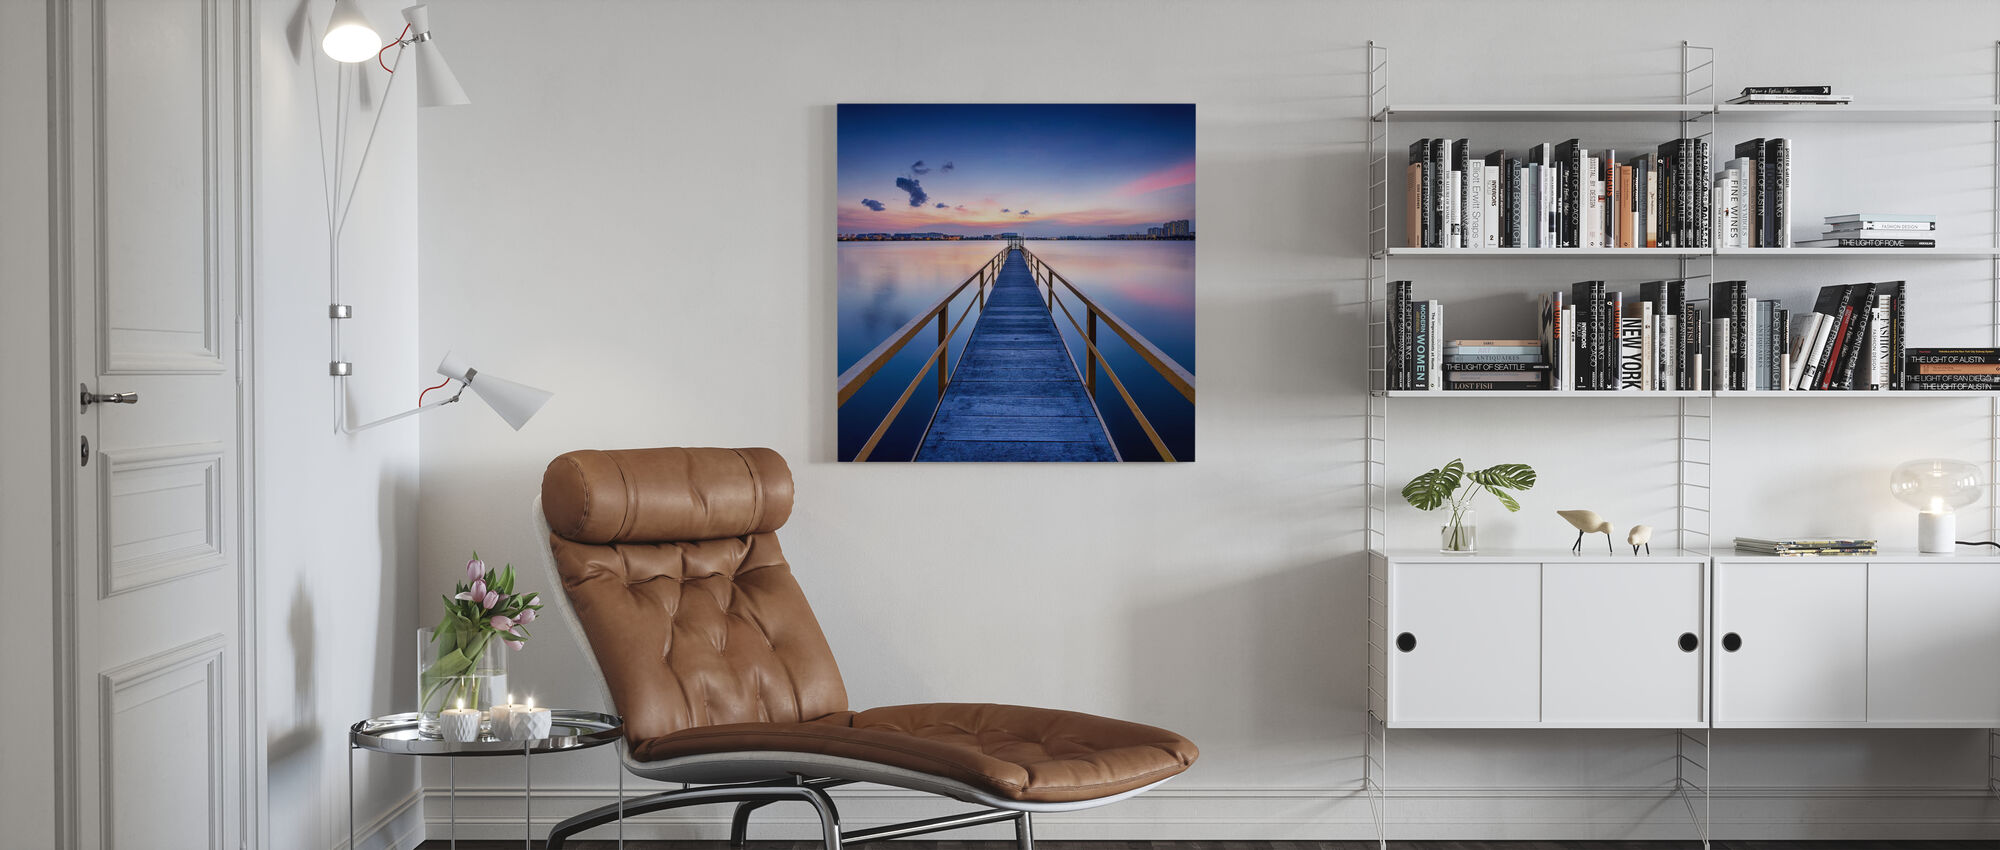 Rosy Sunset Pier - Canvas print - Living Room